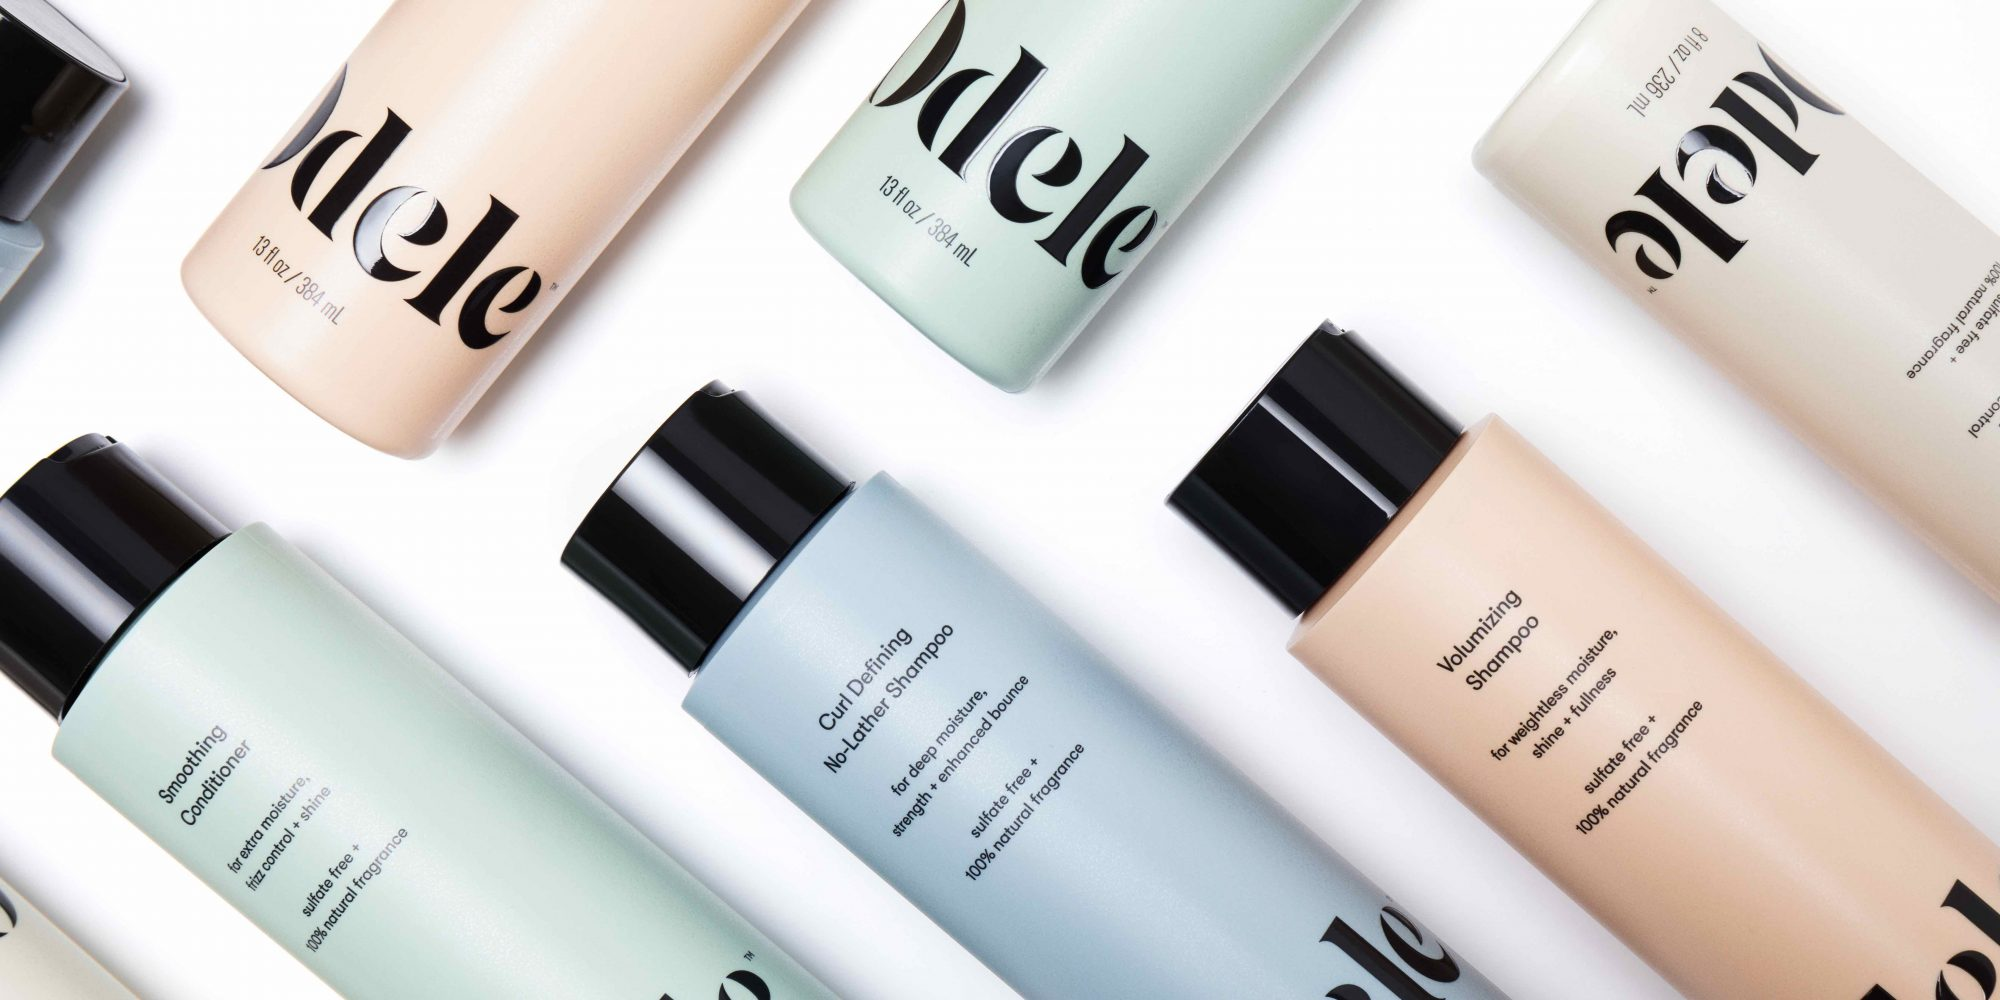 Former Target Insiders Create A Stylish Clean Haircare Brand Now Inside Target Stores